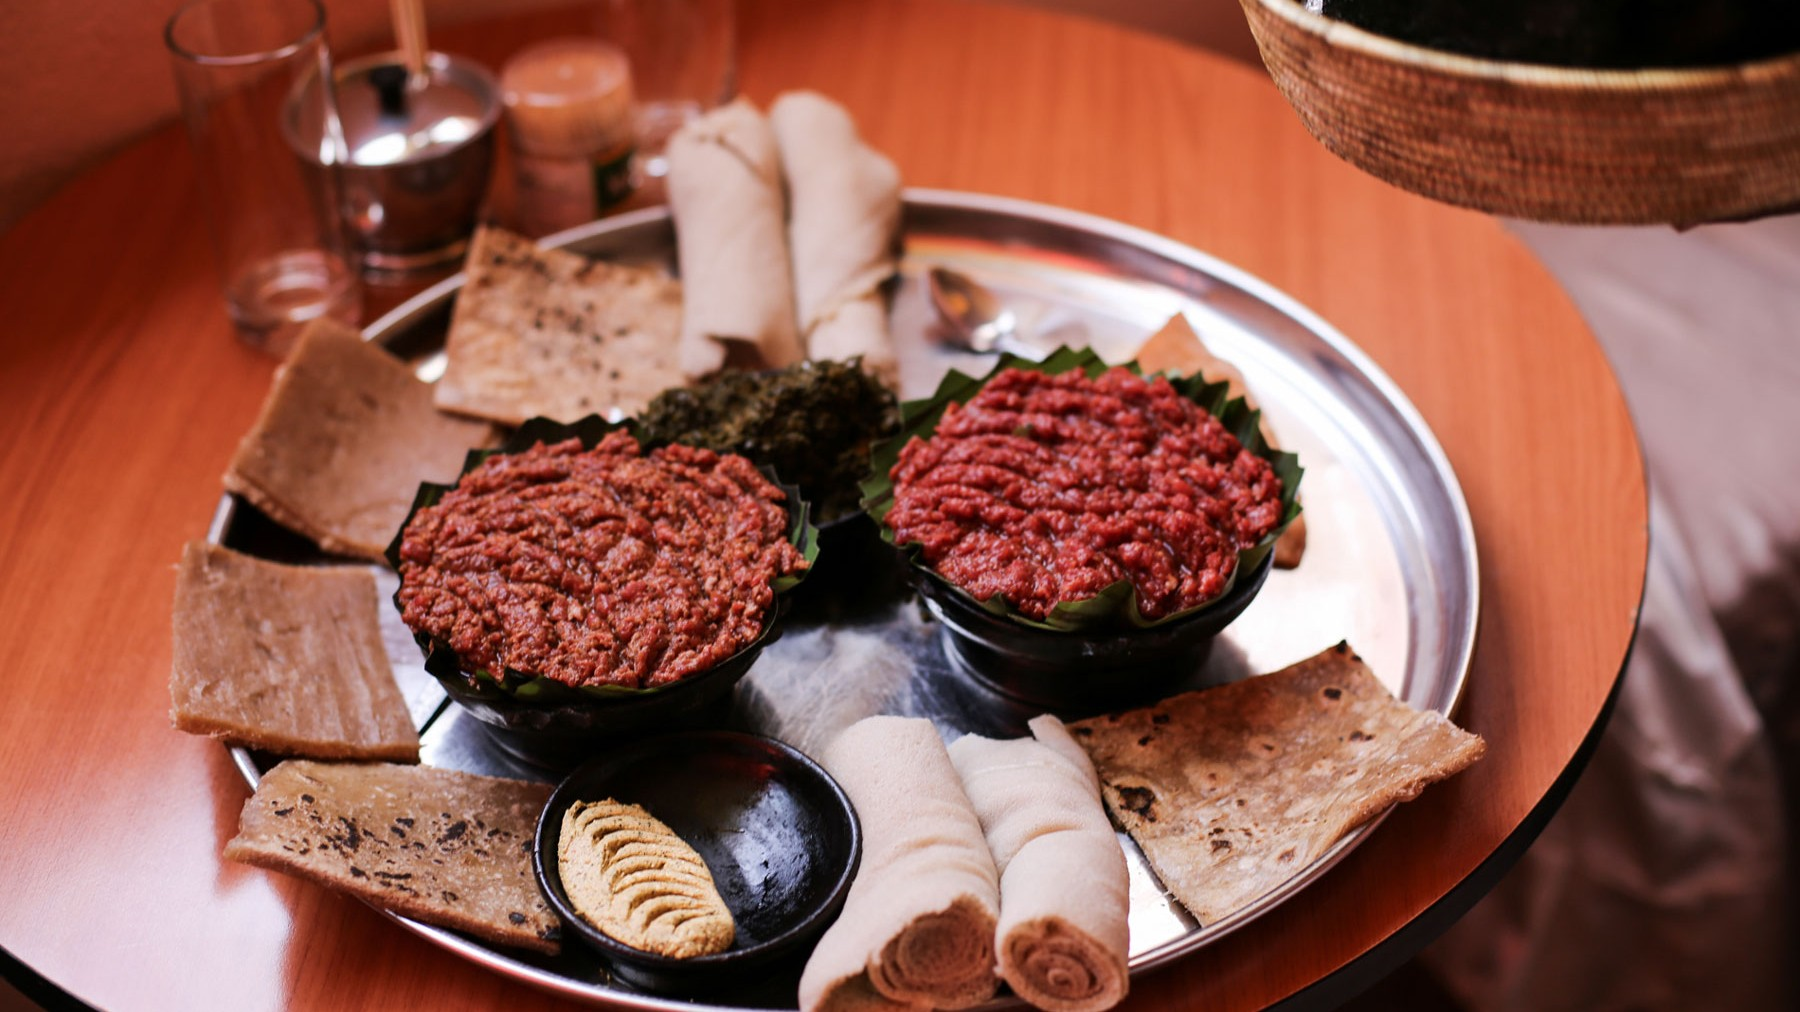 Leb-leb-(left)-is-slightly-cooked-and-kitfo-(right)-is-warmed-raw-minced-meat